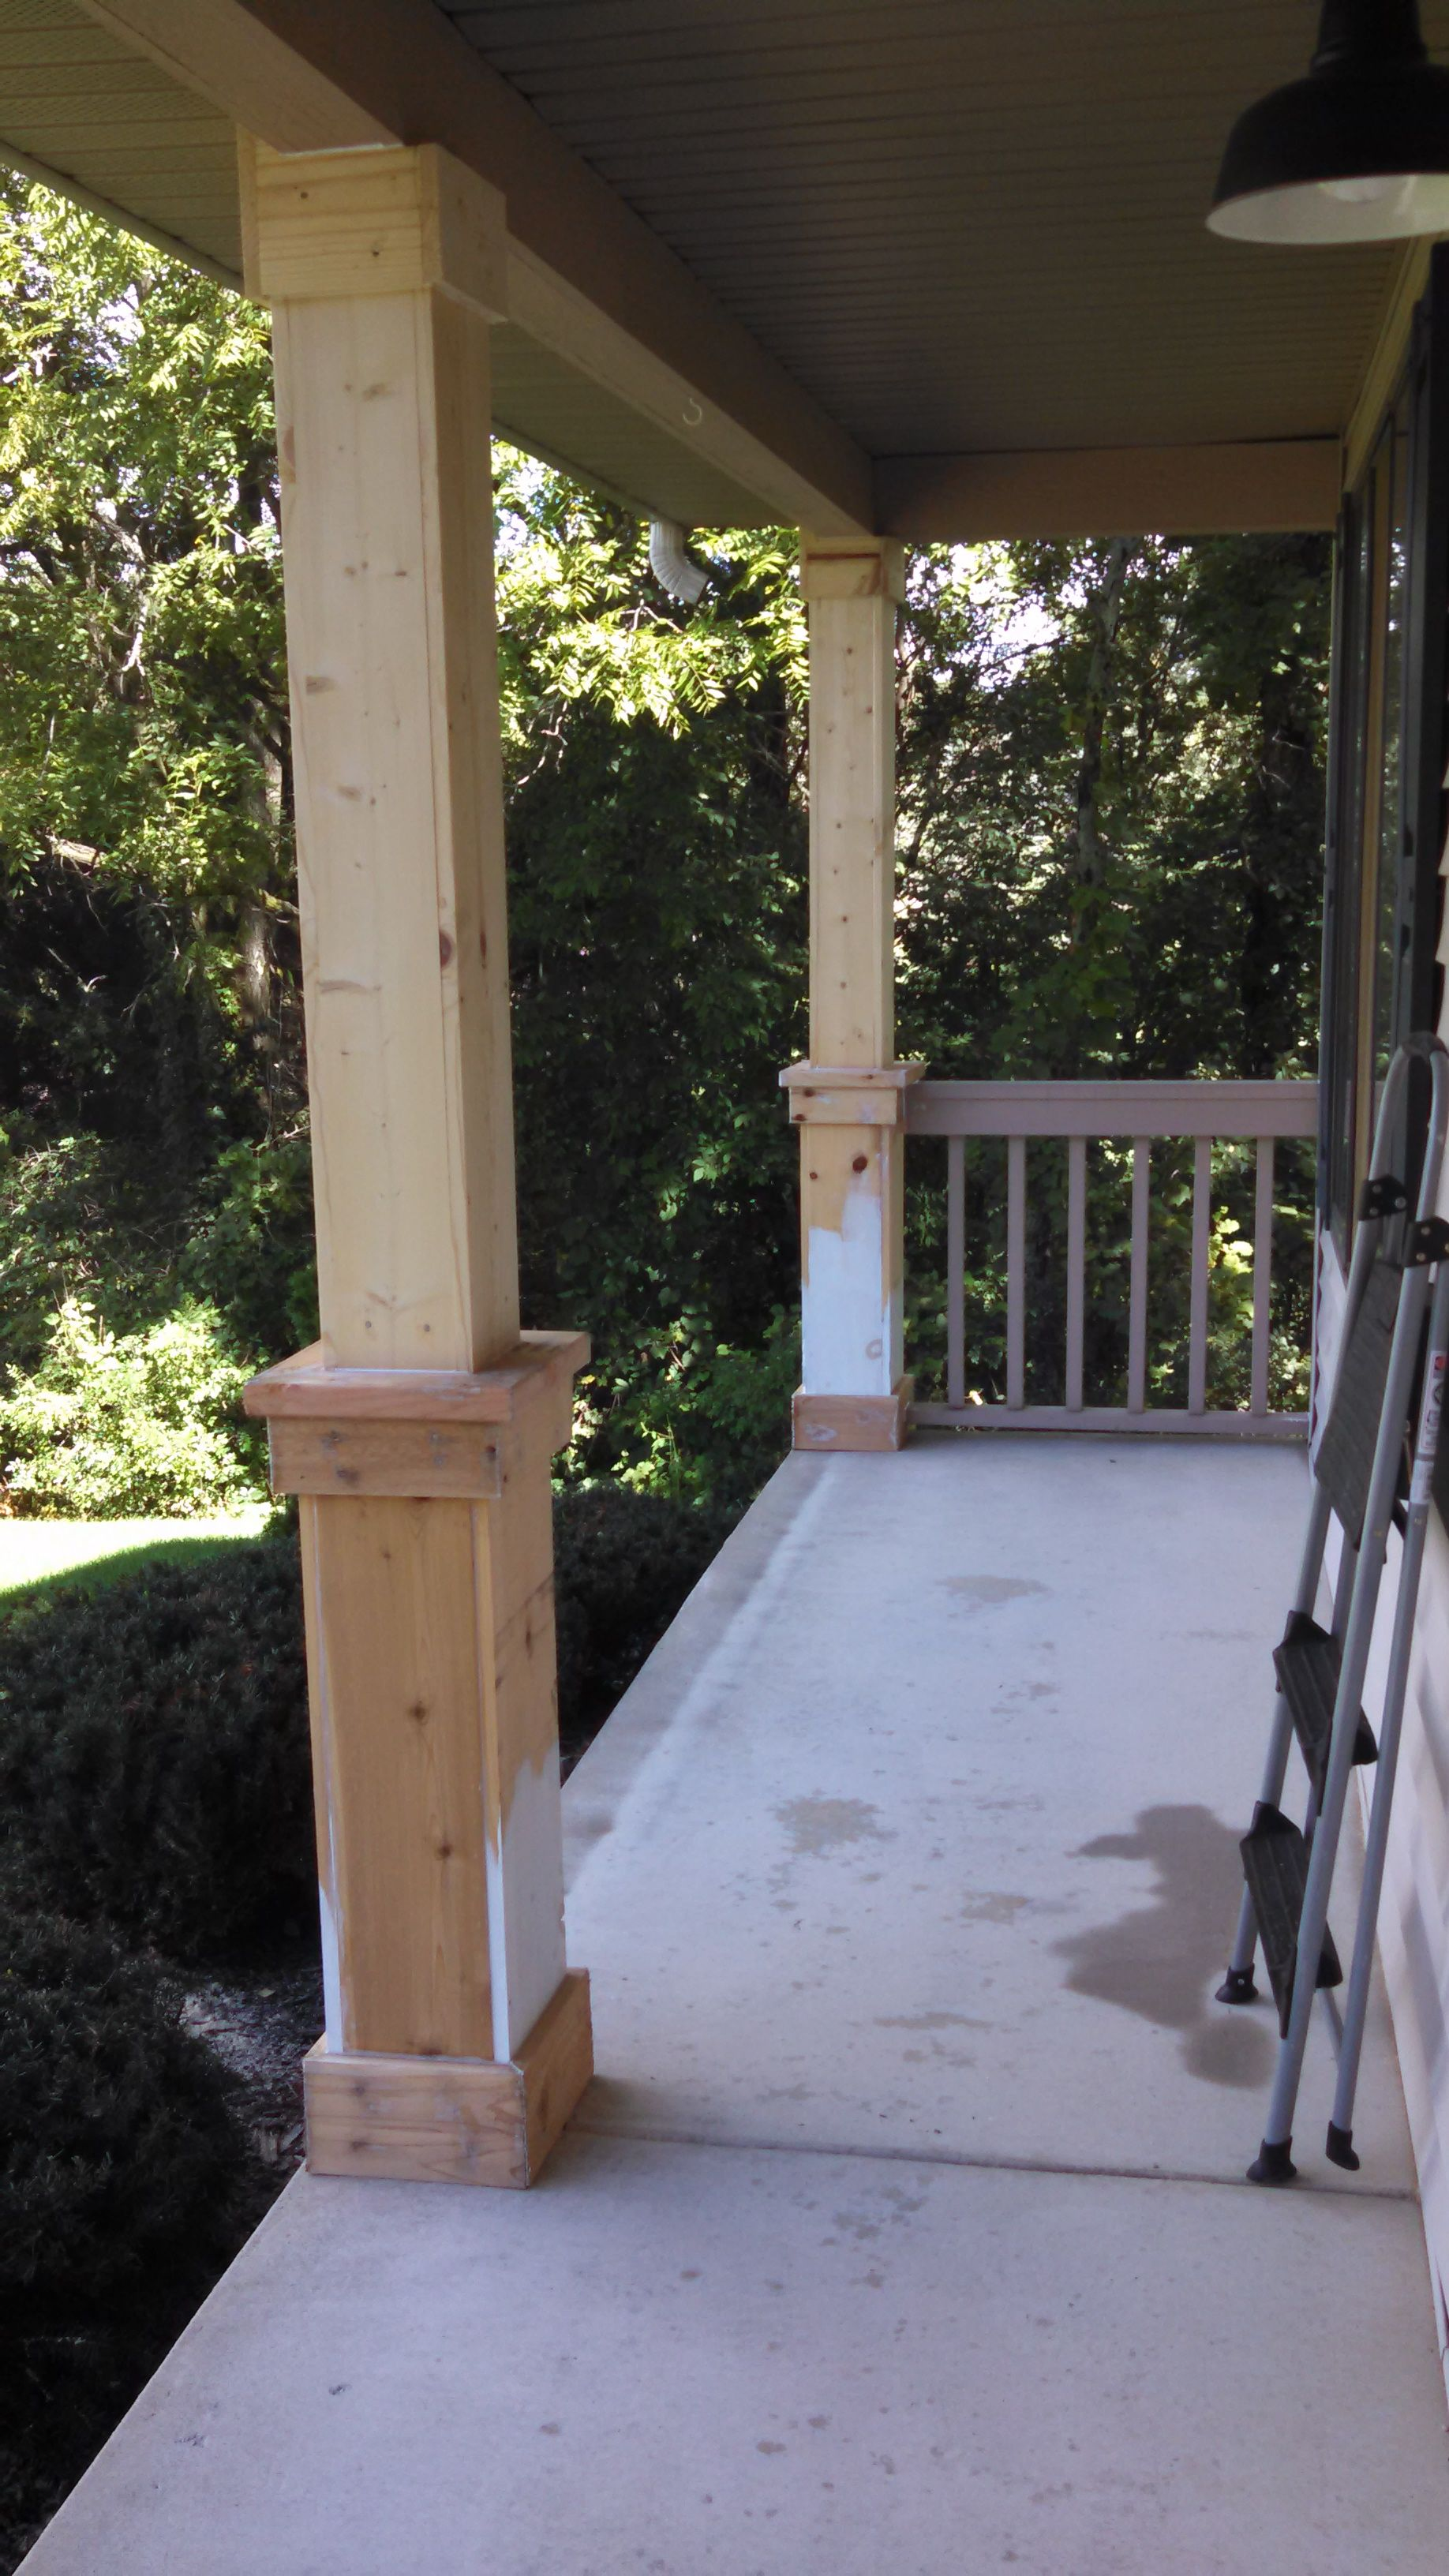 had to winter which front content remove columns porch